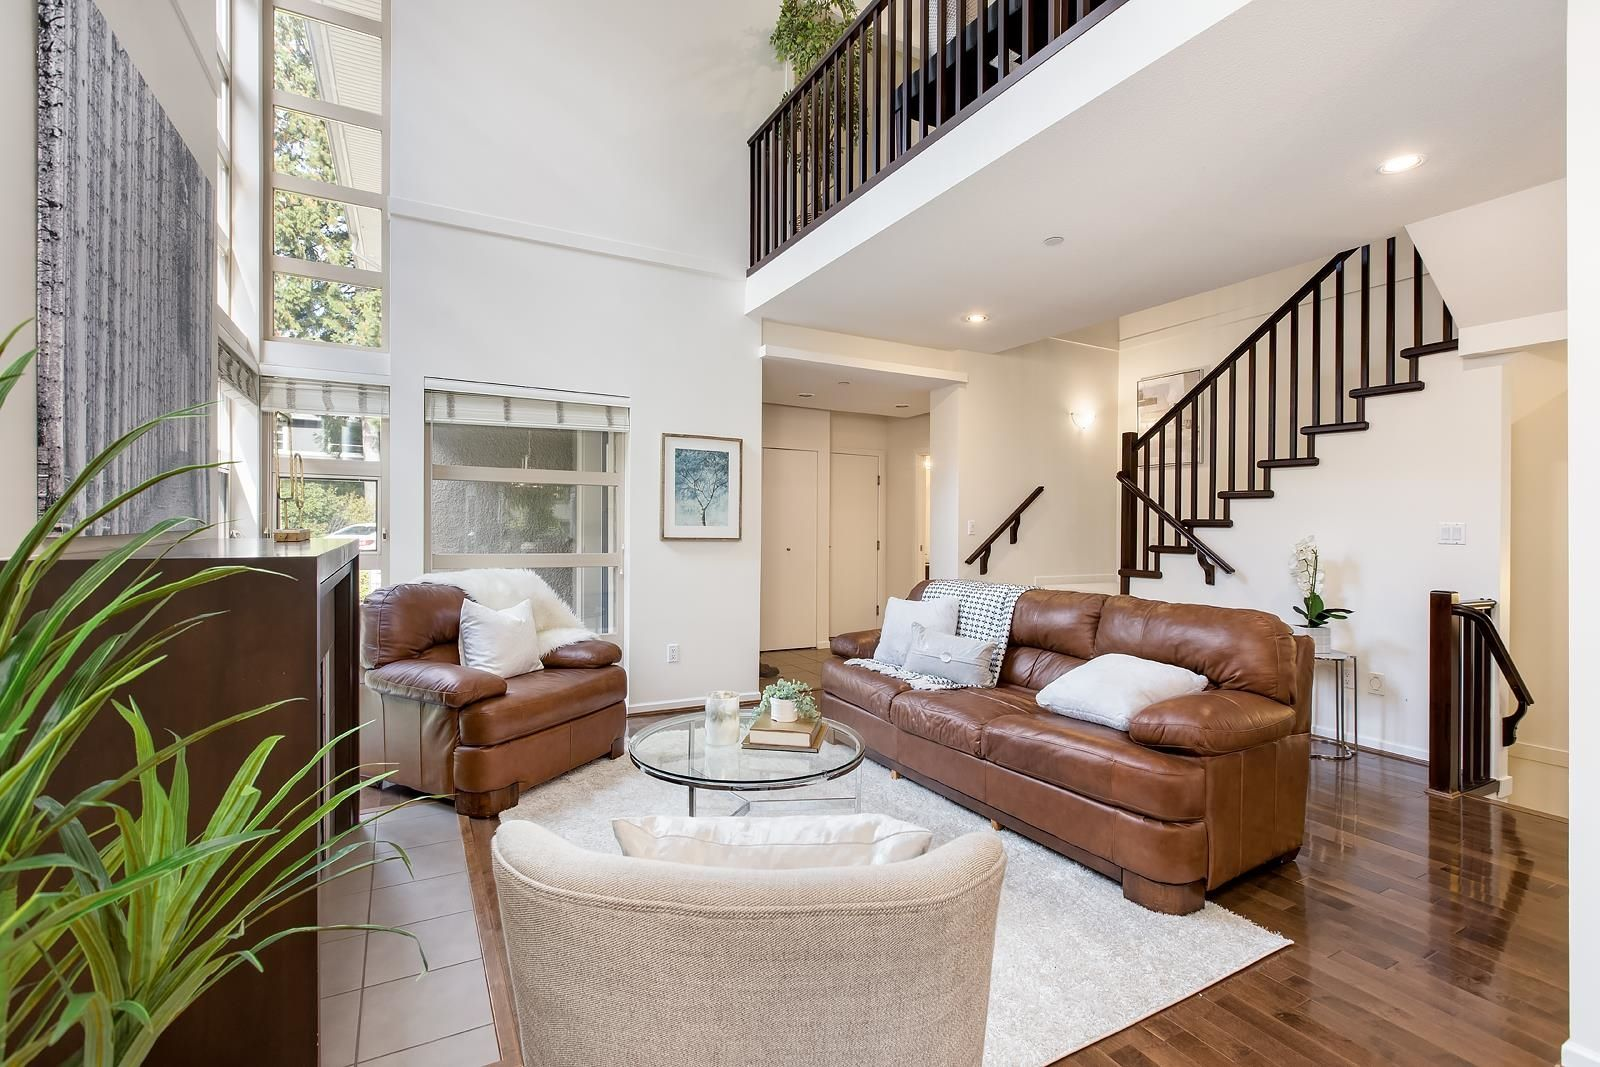 Main Photo: 5 3750 EDGEMONT BOULEVARD in North Vancouver: Edgemont Townhouse for sale : MLS®# R2624665